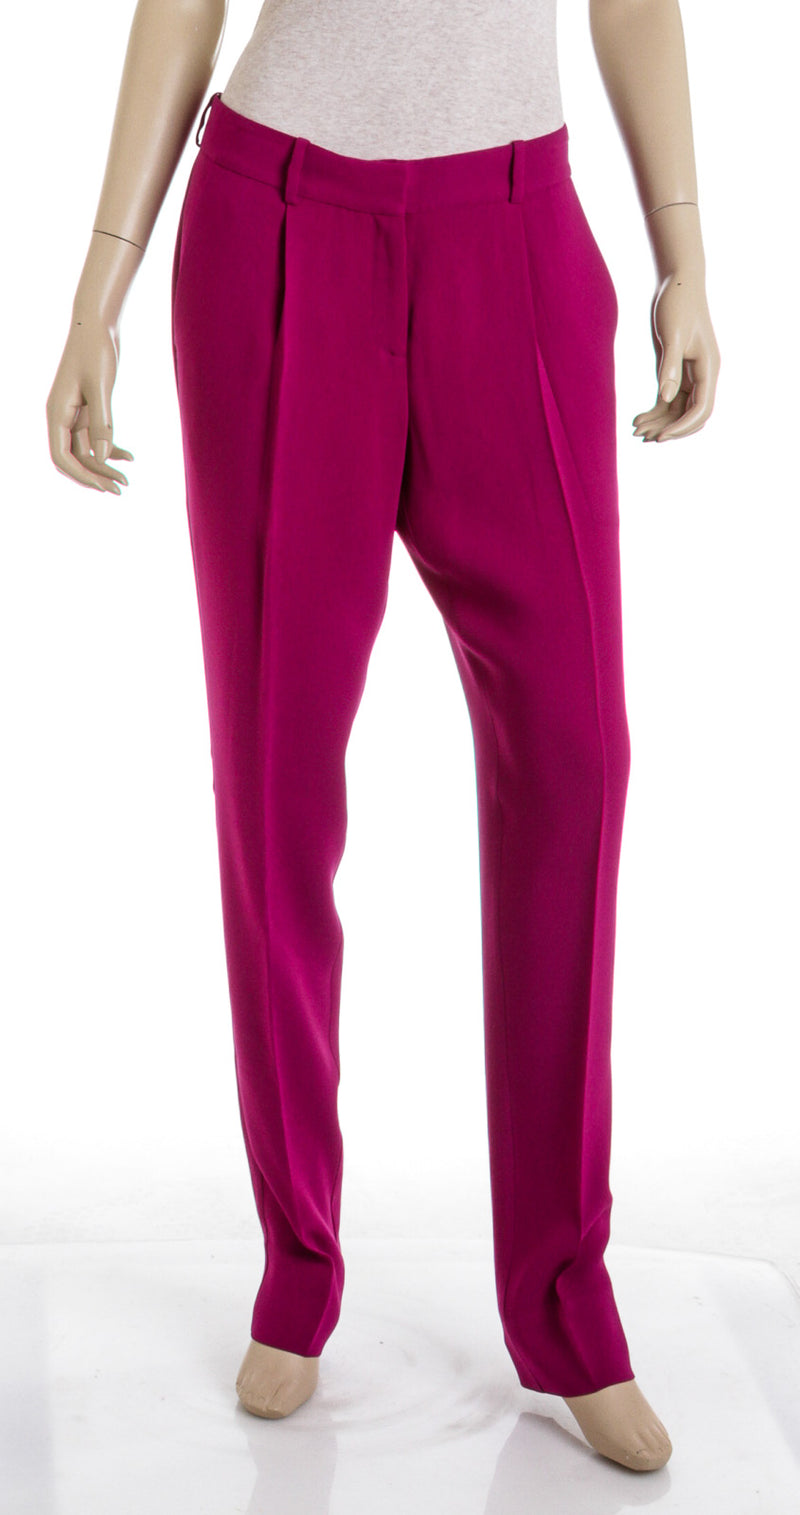 Diane Von Furstenburg Purple Slacks (Size 6)